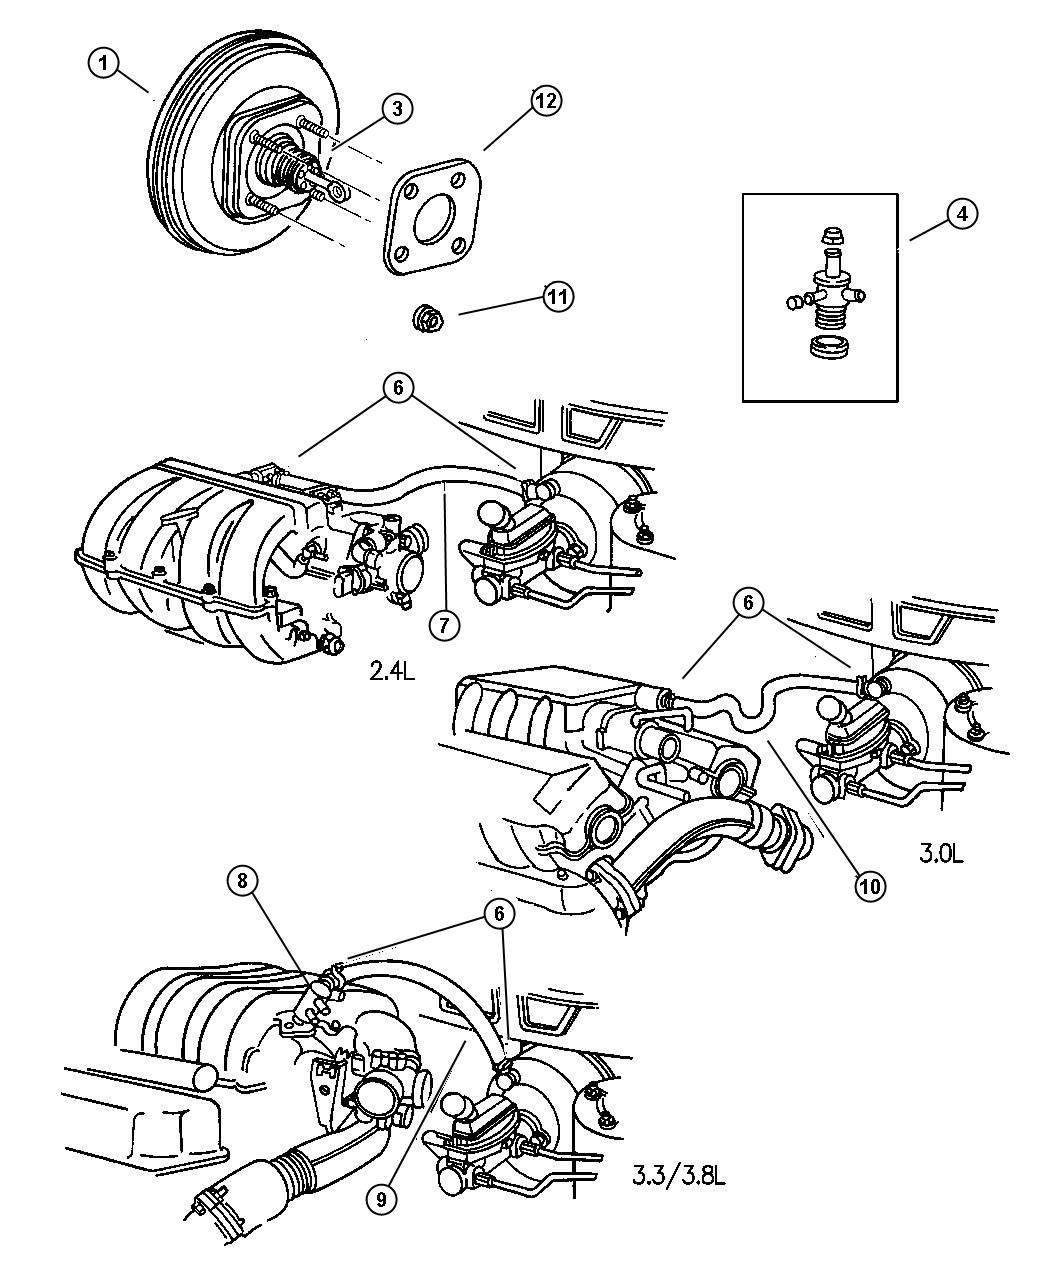 Plymouth Voyager Booster Power Brake